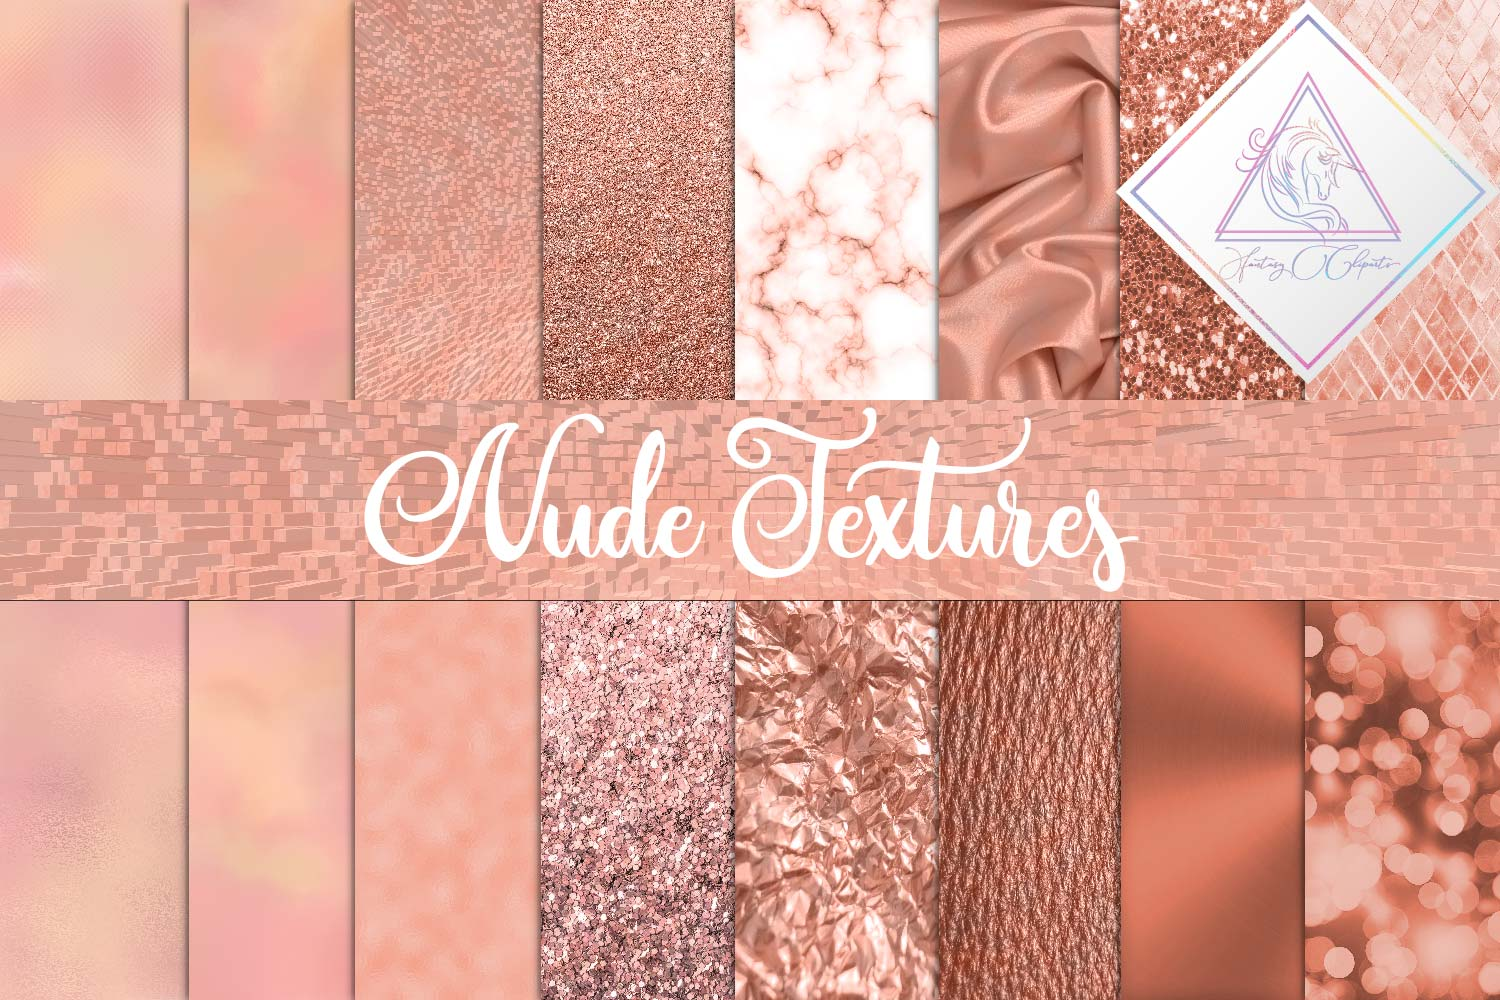 Nude Textures Digital Paper example image 1